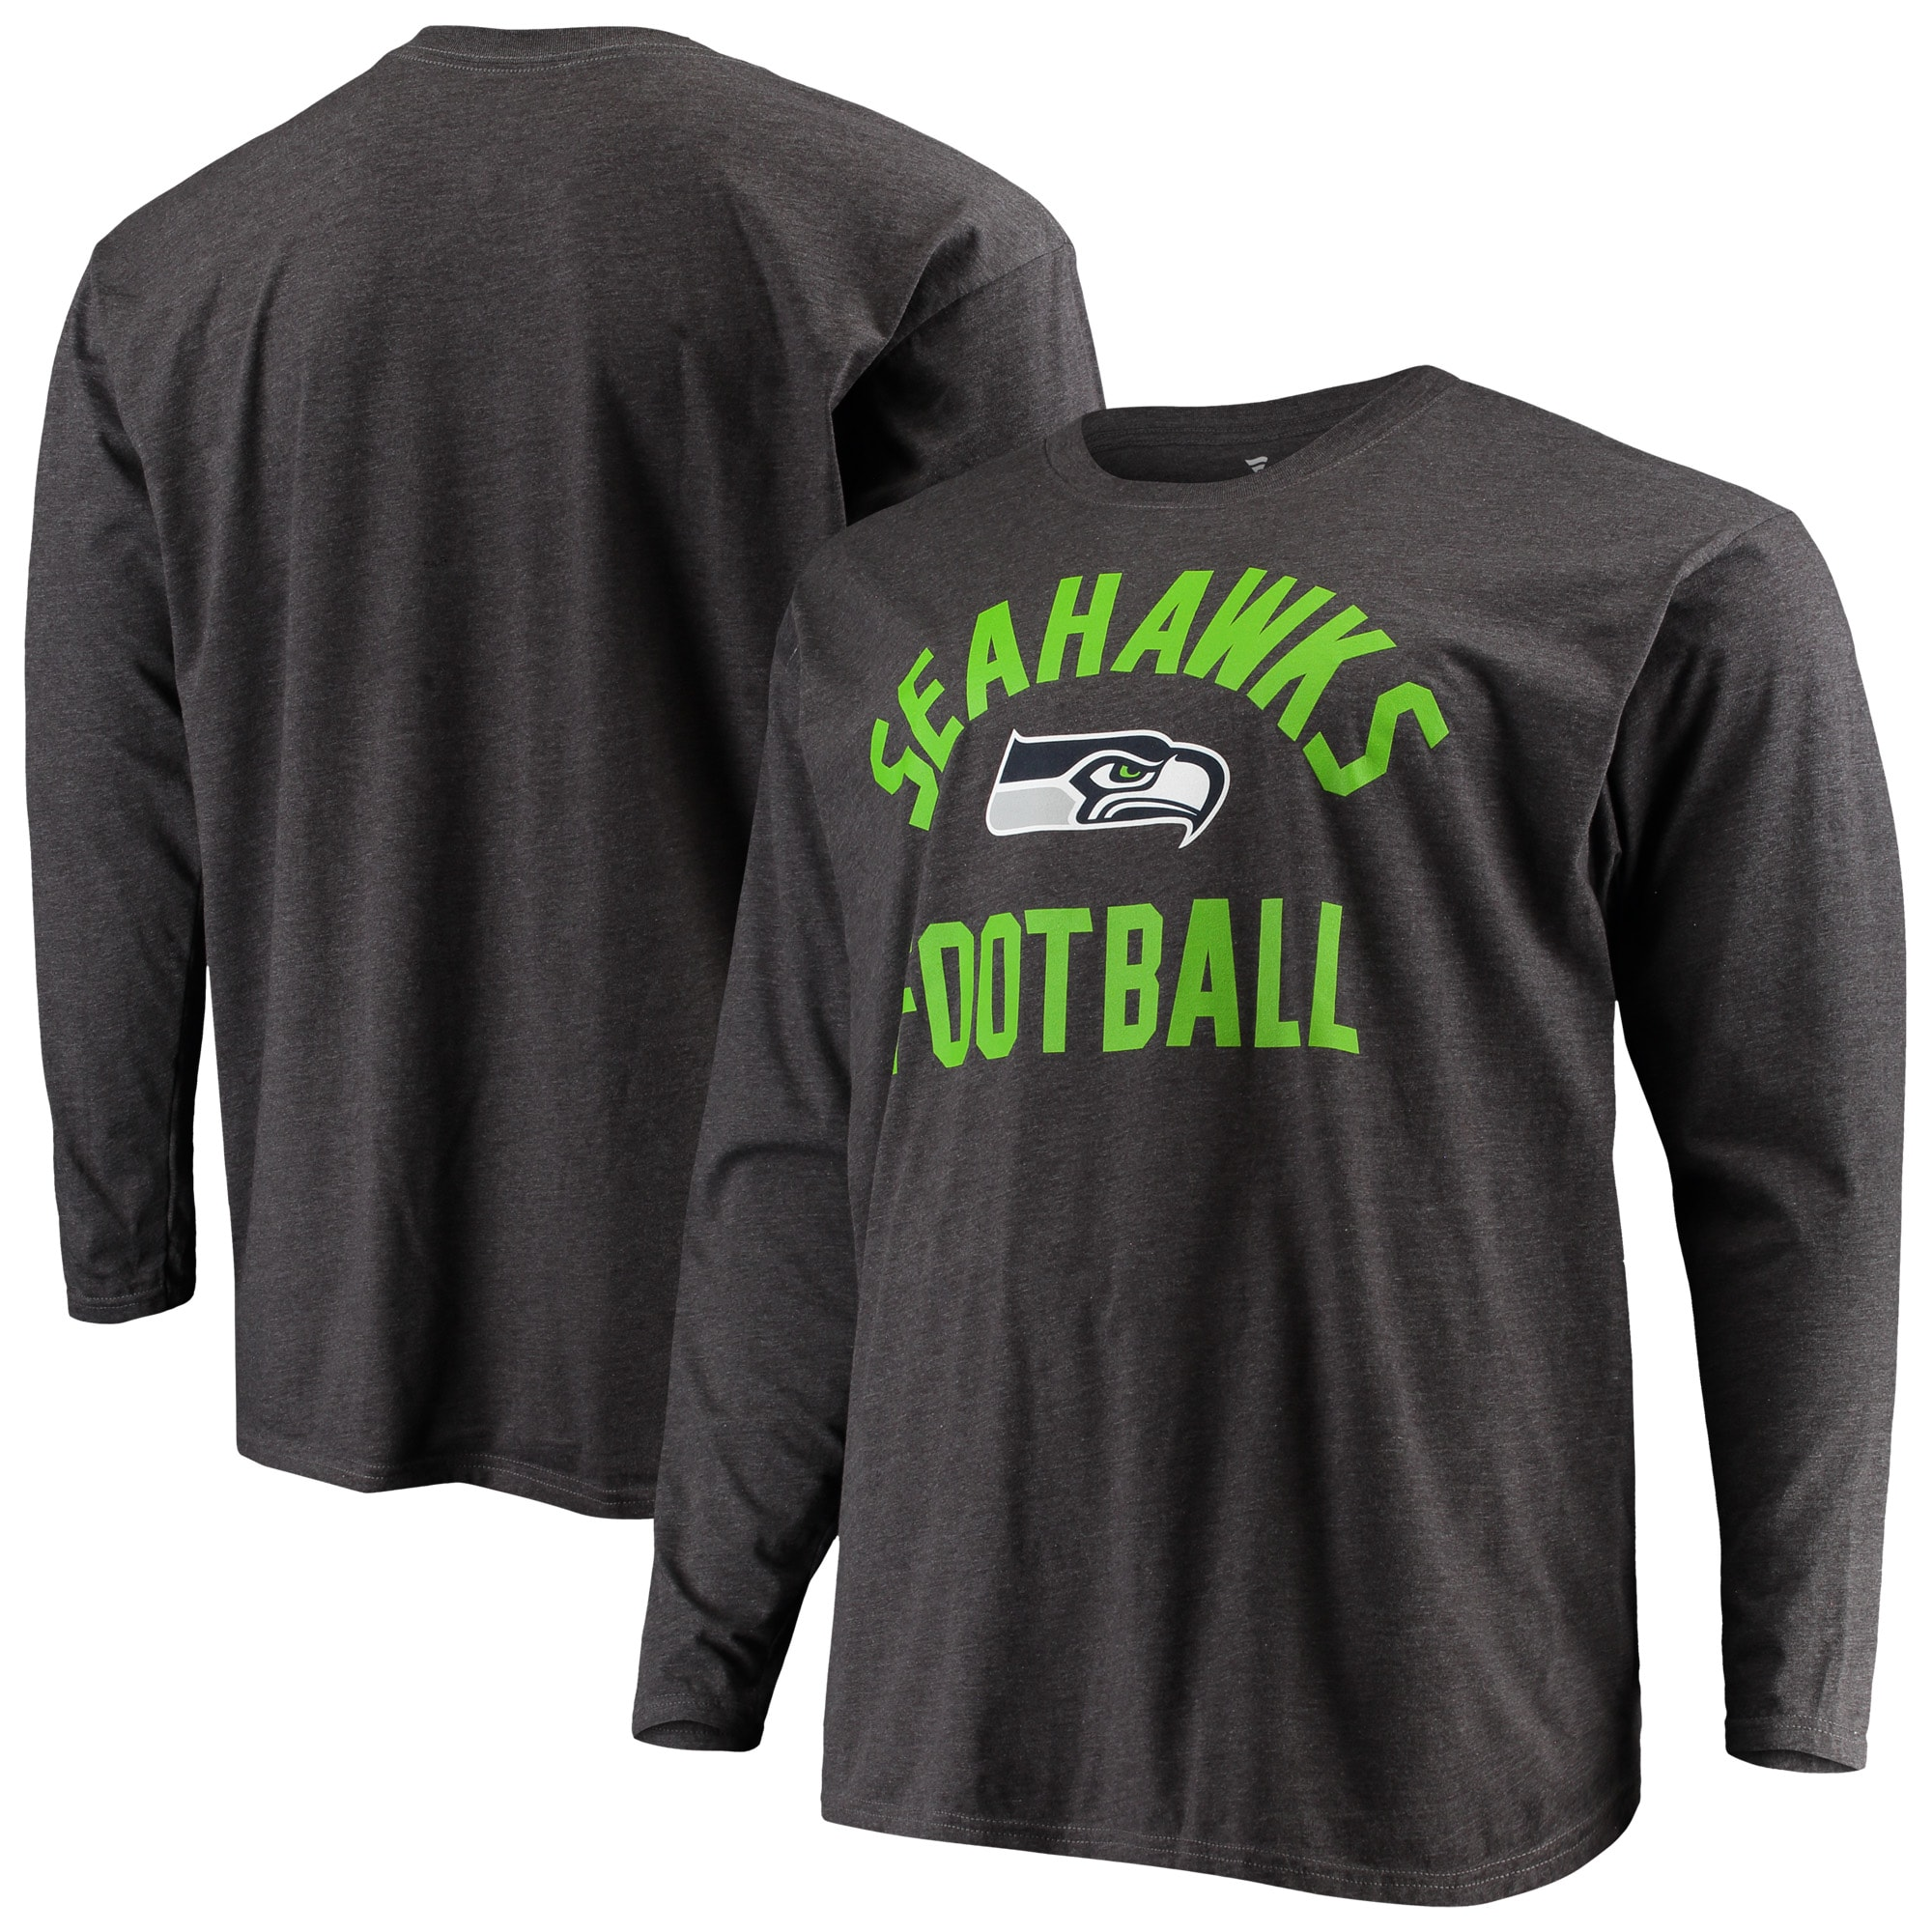 Seattle Seahawks NFL Pro Line by Fanatics Branded Big & Tall Team Pride Long Sleeve T-Shirt - Heathered Charcoal